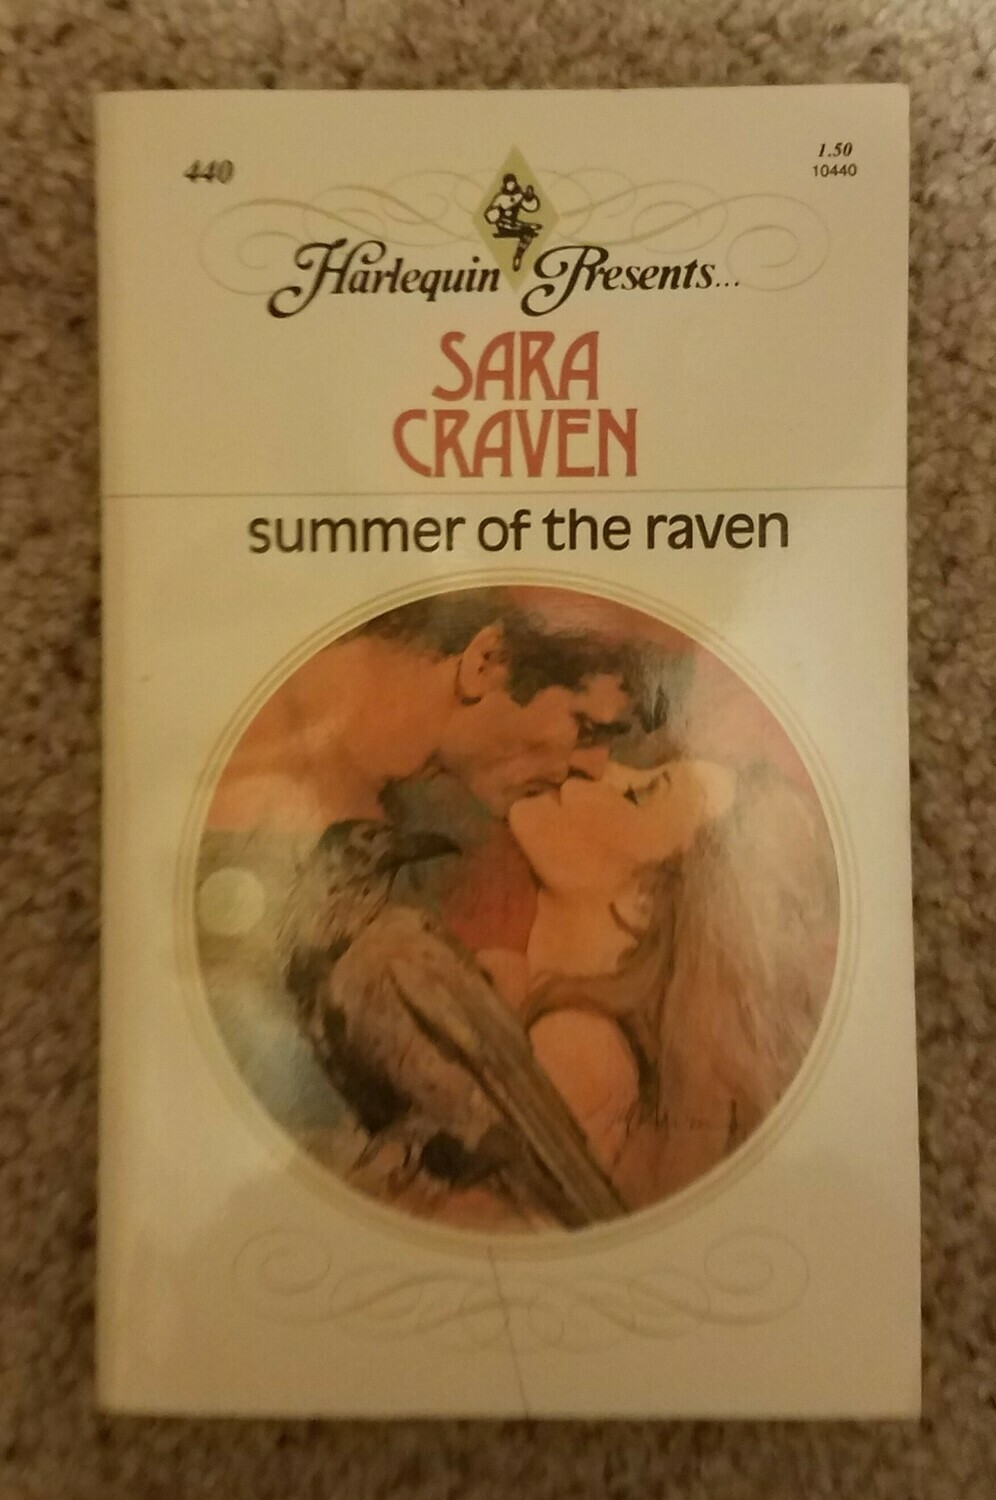 Summer of the Raven by Sara Craven